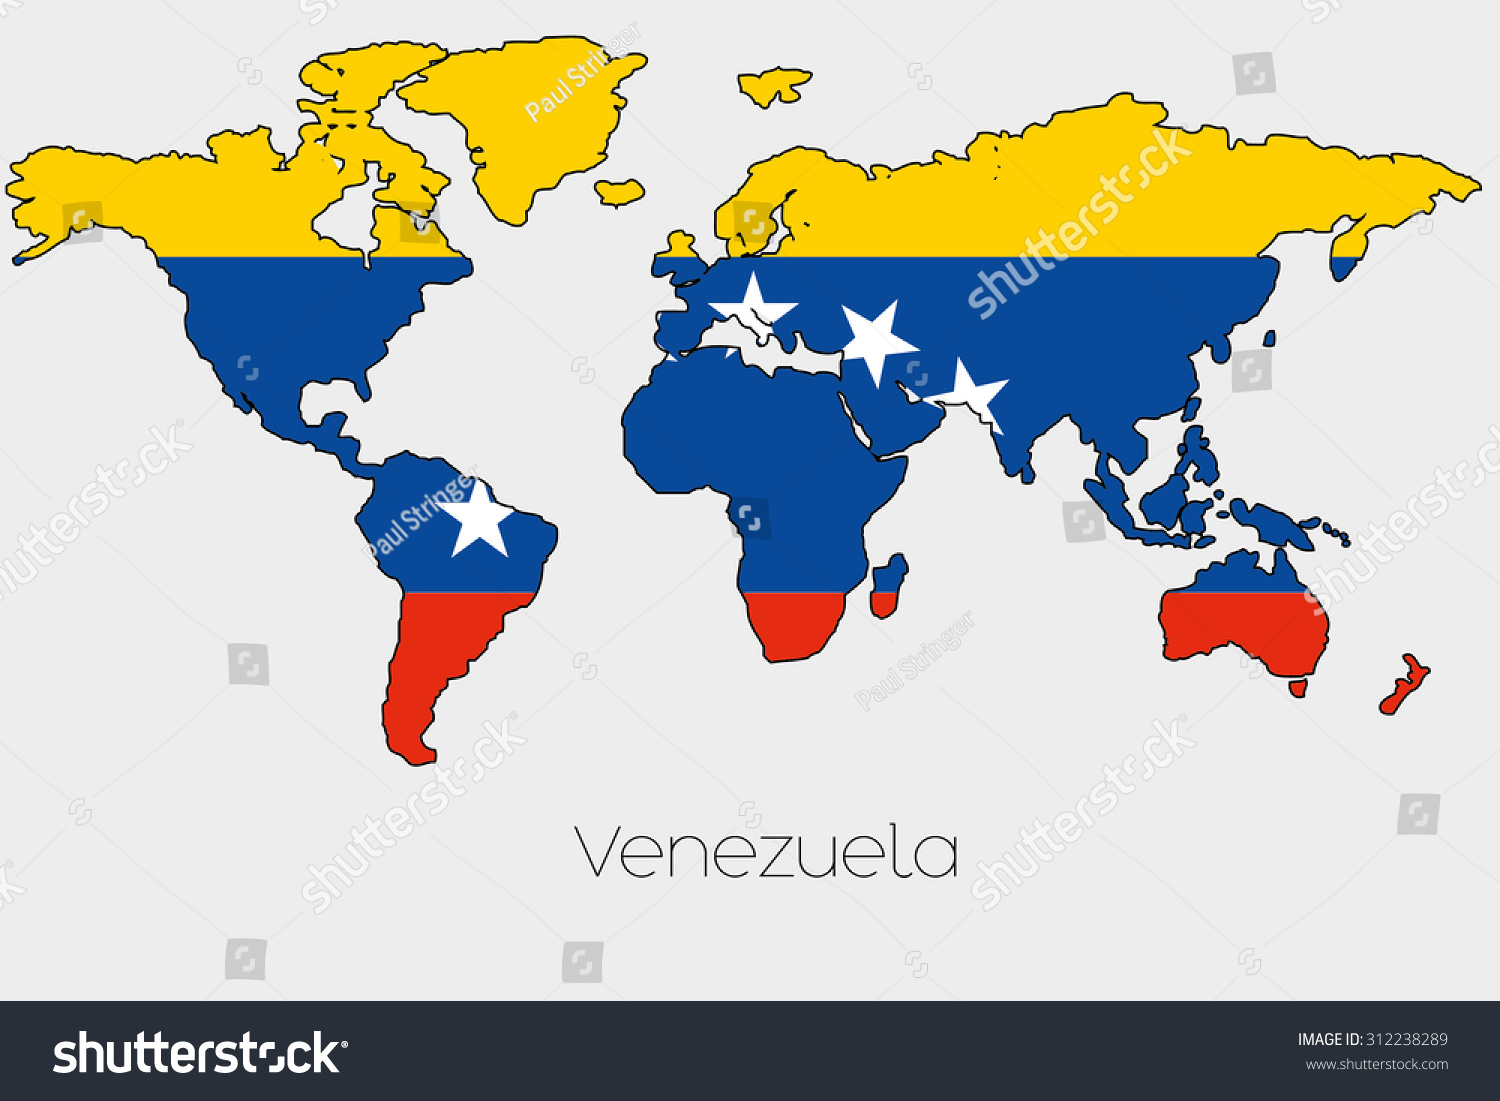 Flag illustration inside shape world map vectores en stock 312238289 a flag illustration inside the shape of a world map of the country of venezuela gumiabroncs Images